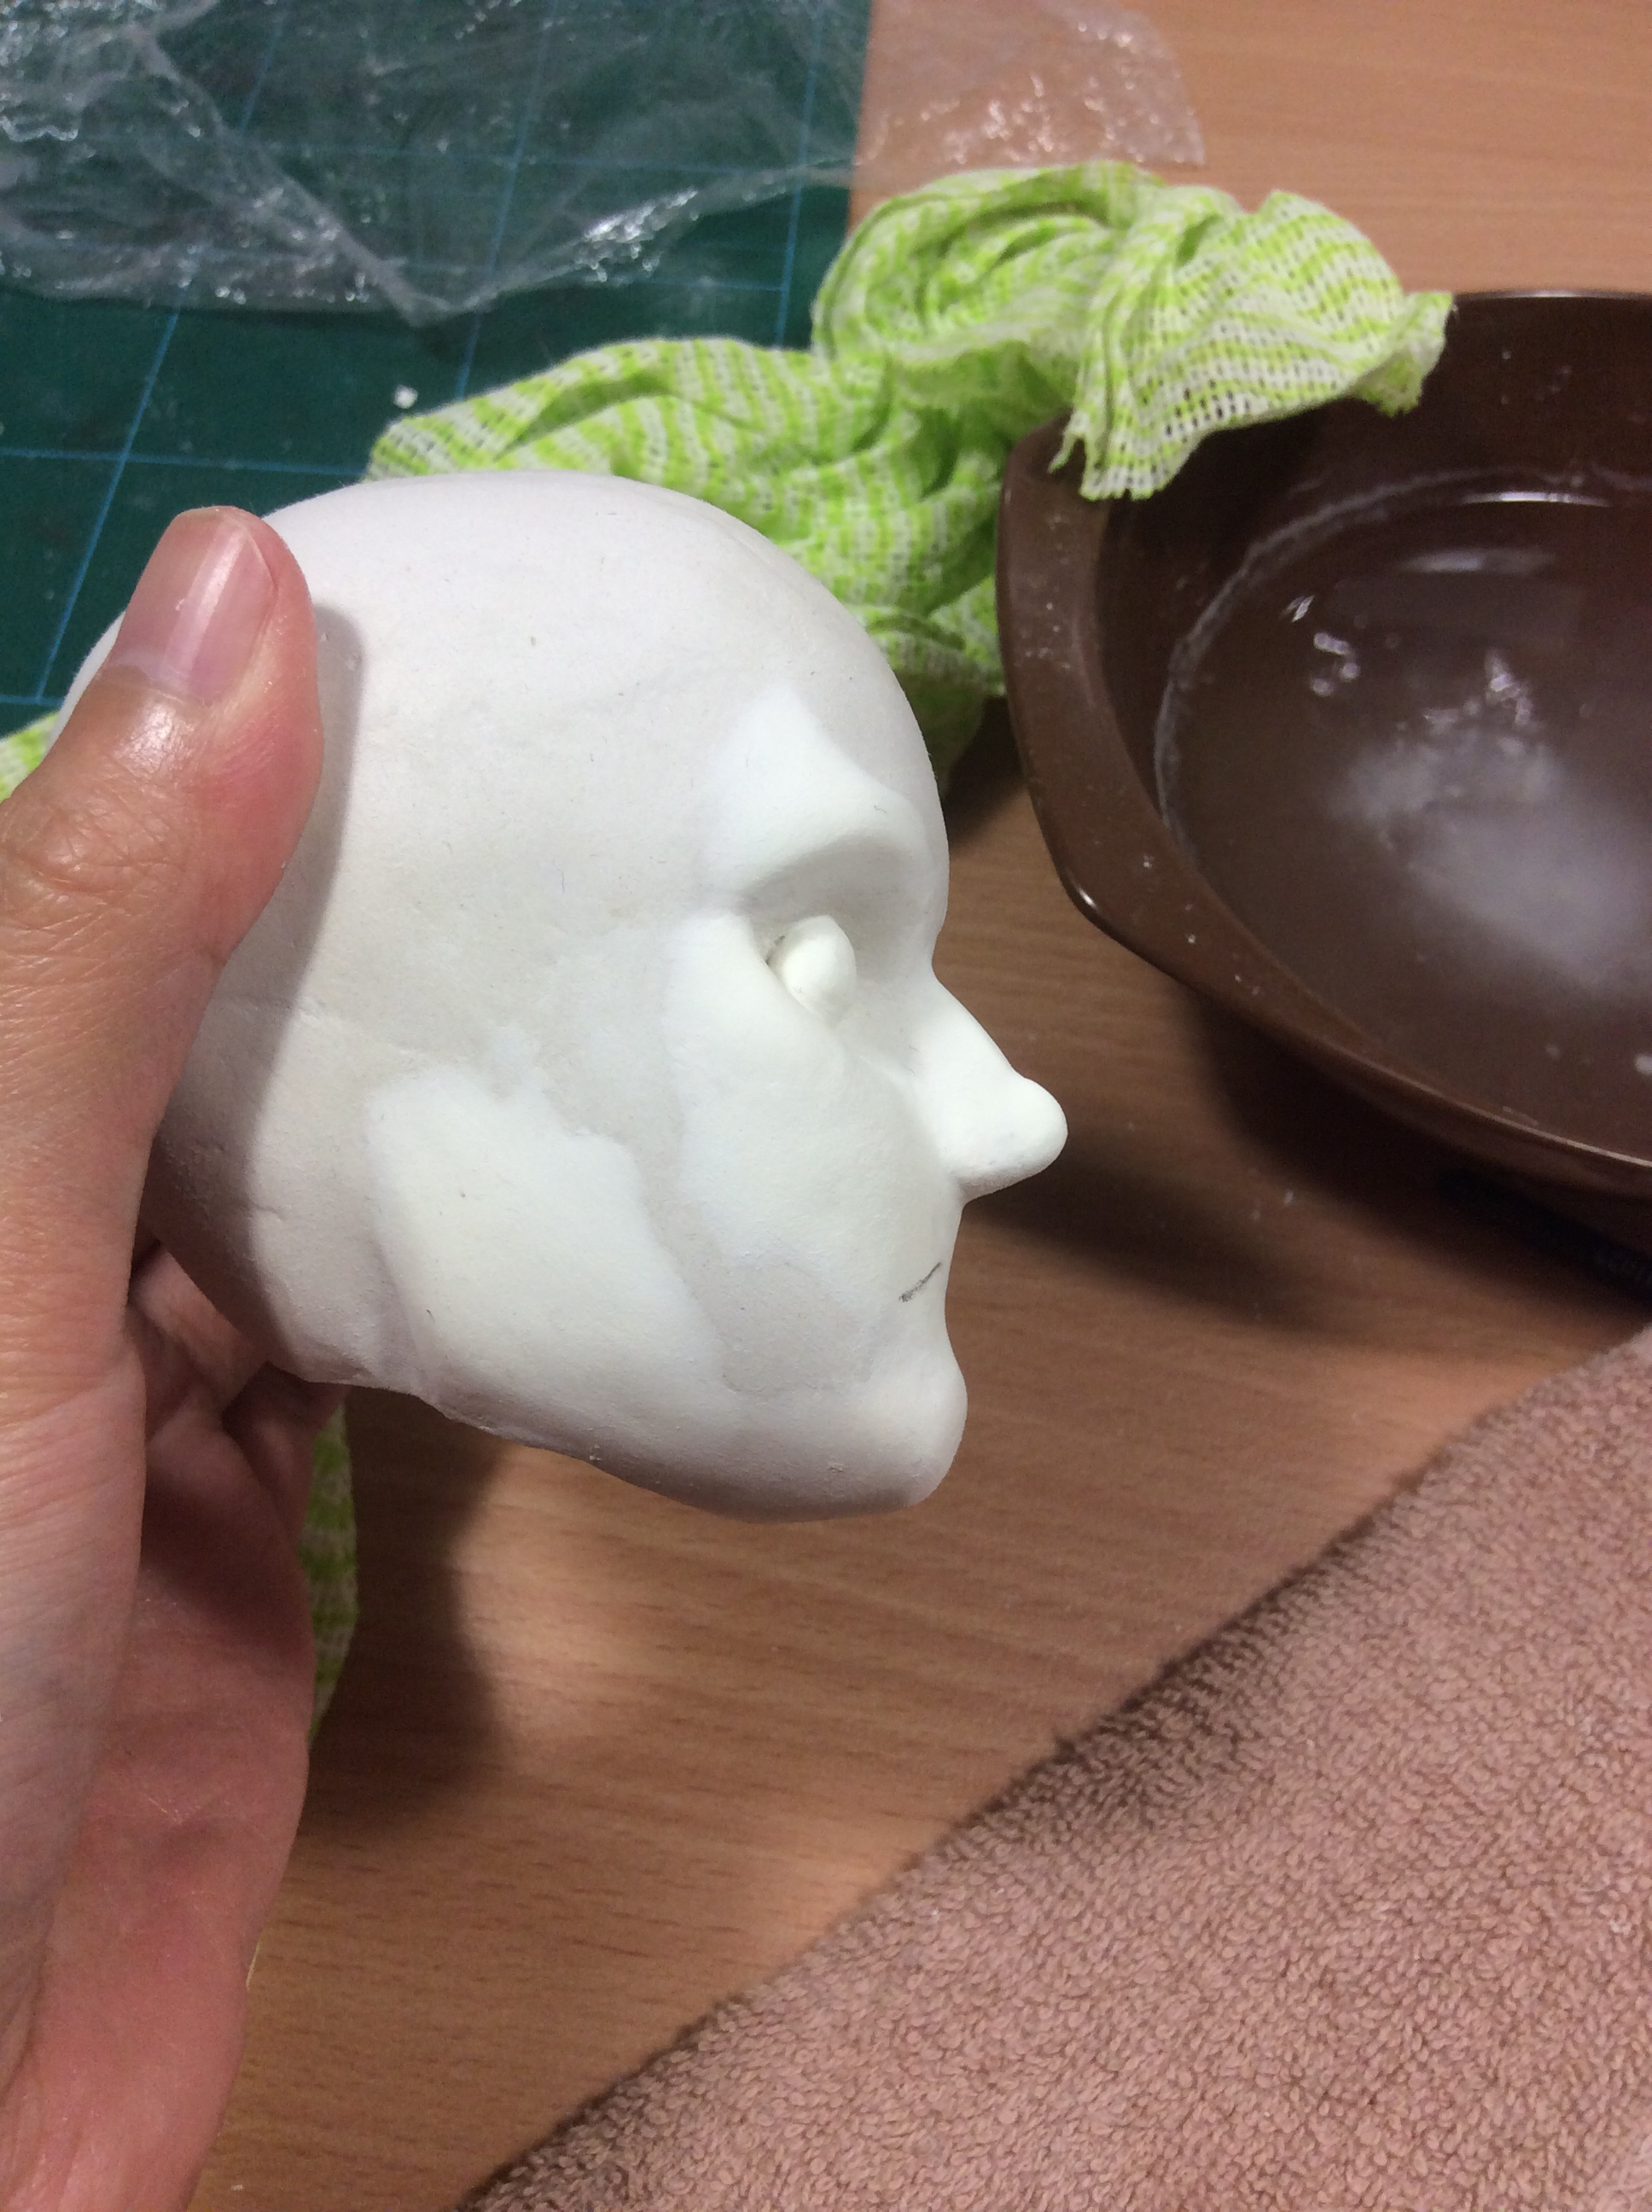 jemse---my-first-doll-head-making-progress-diary-part-2_32374206016_o